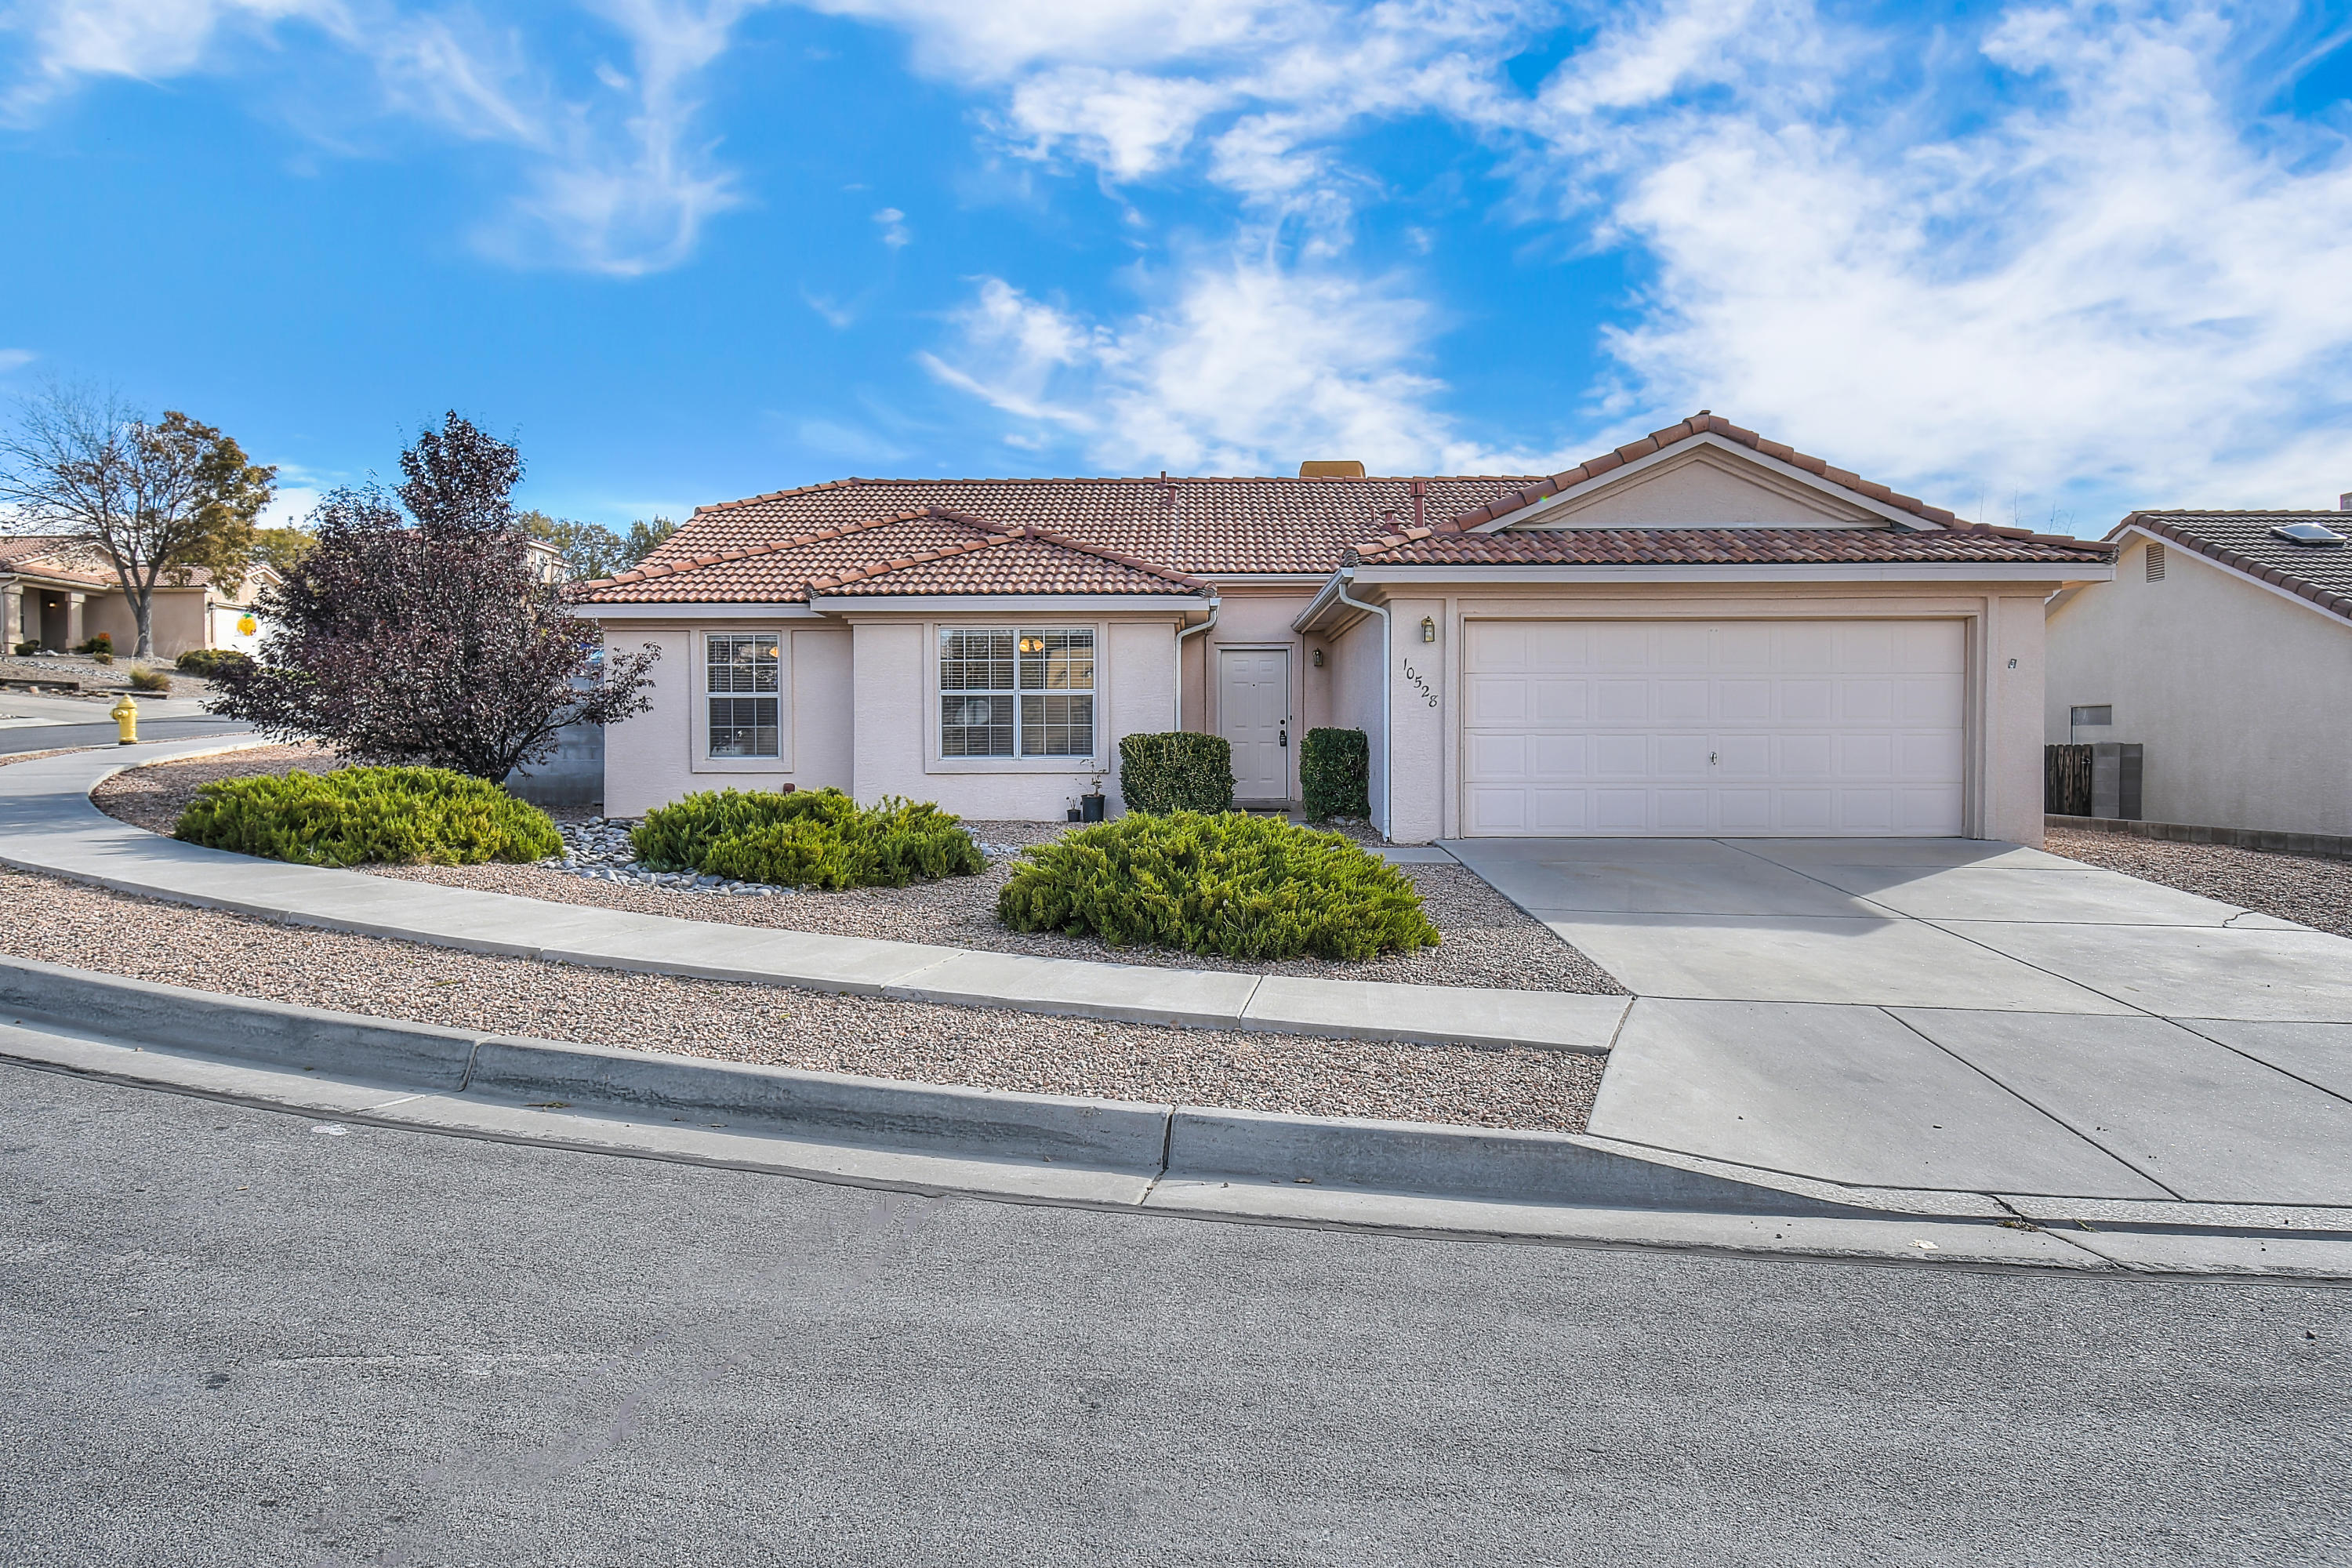 Welcome to Tuscany Subdivision! Wonderful 4 bedroom, 2 full bath, 2 car garage situated on a large corner lot.  Freshly painted, brand new carpet & new blinds throughout.